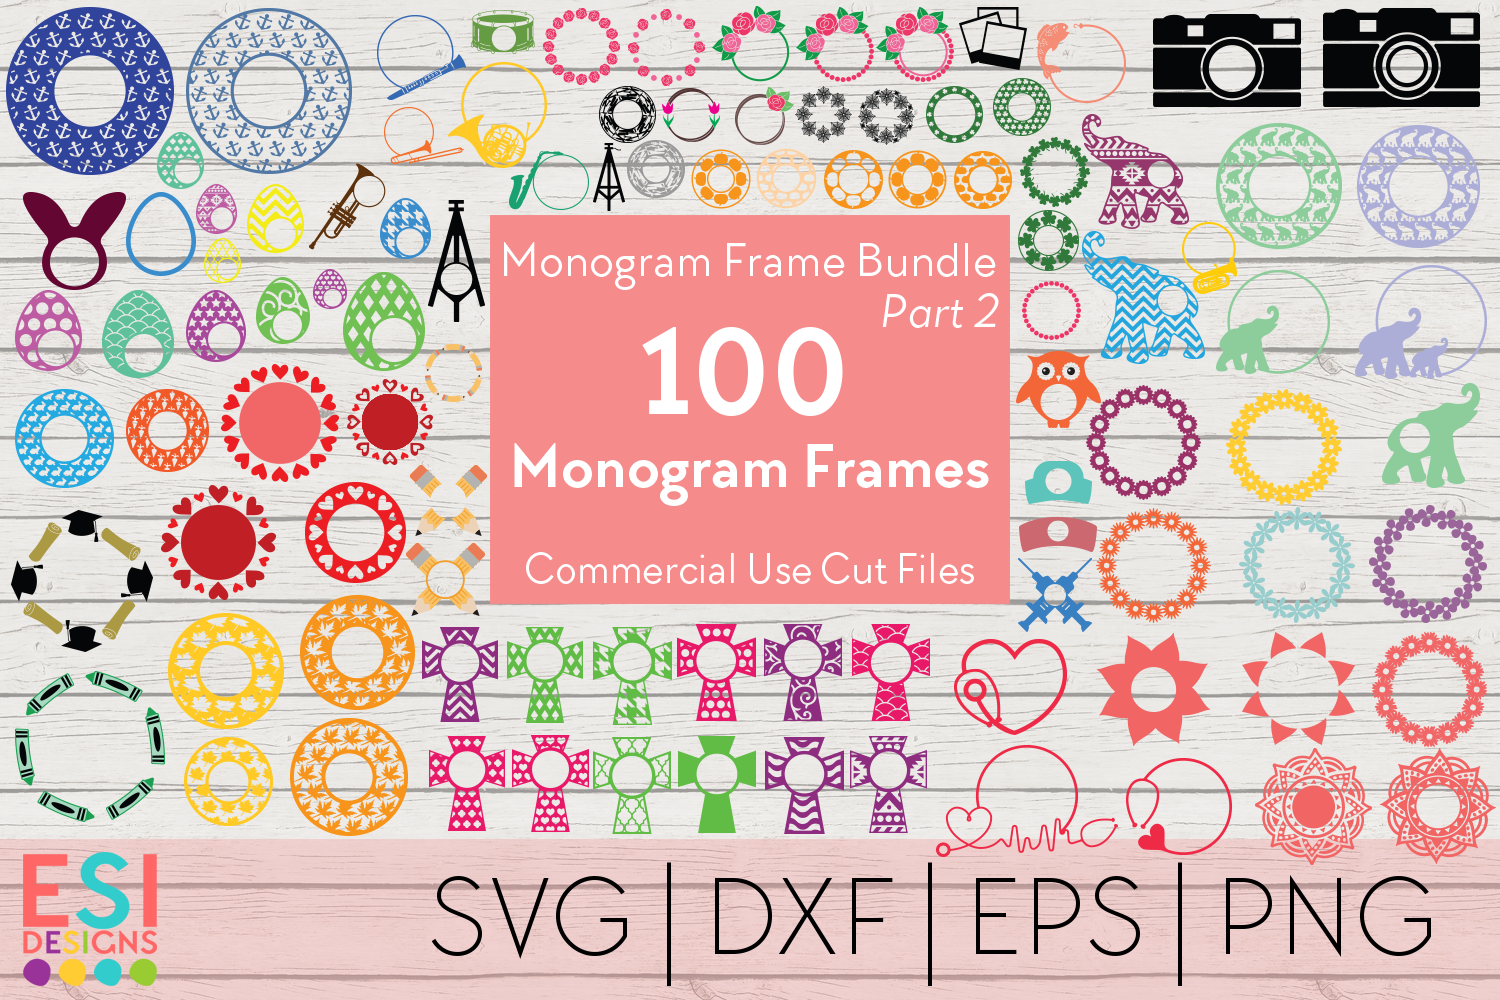 Download Free Monogram Frame Bundle Graphic By Esi Designs Creative Fabrica for Cricut Explore, Silhouette and other cutting machines.